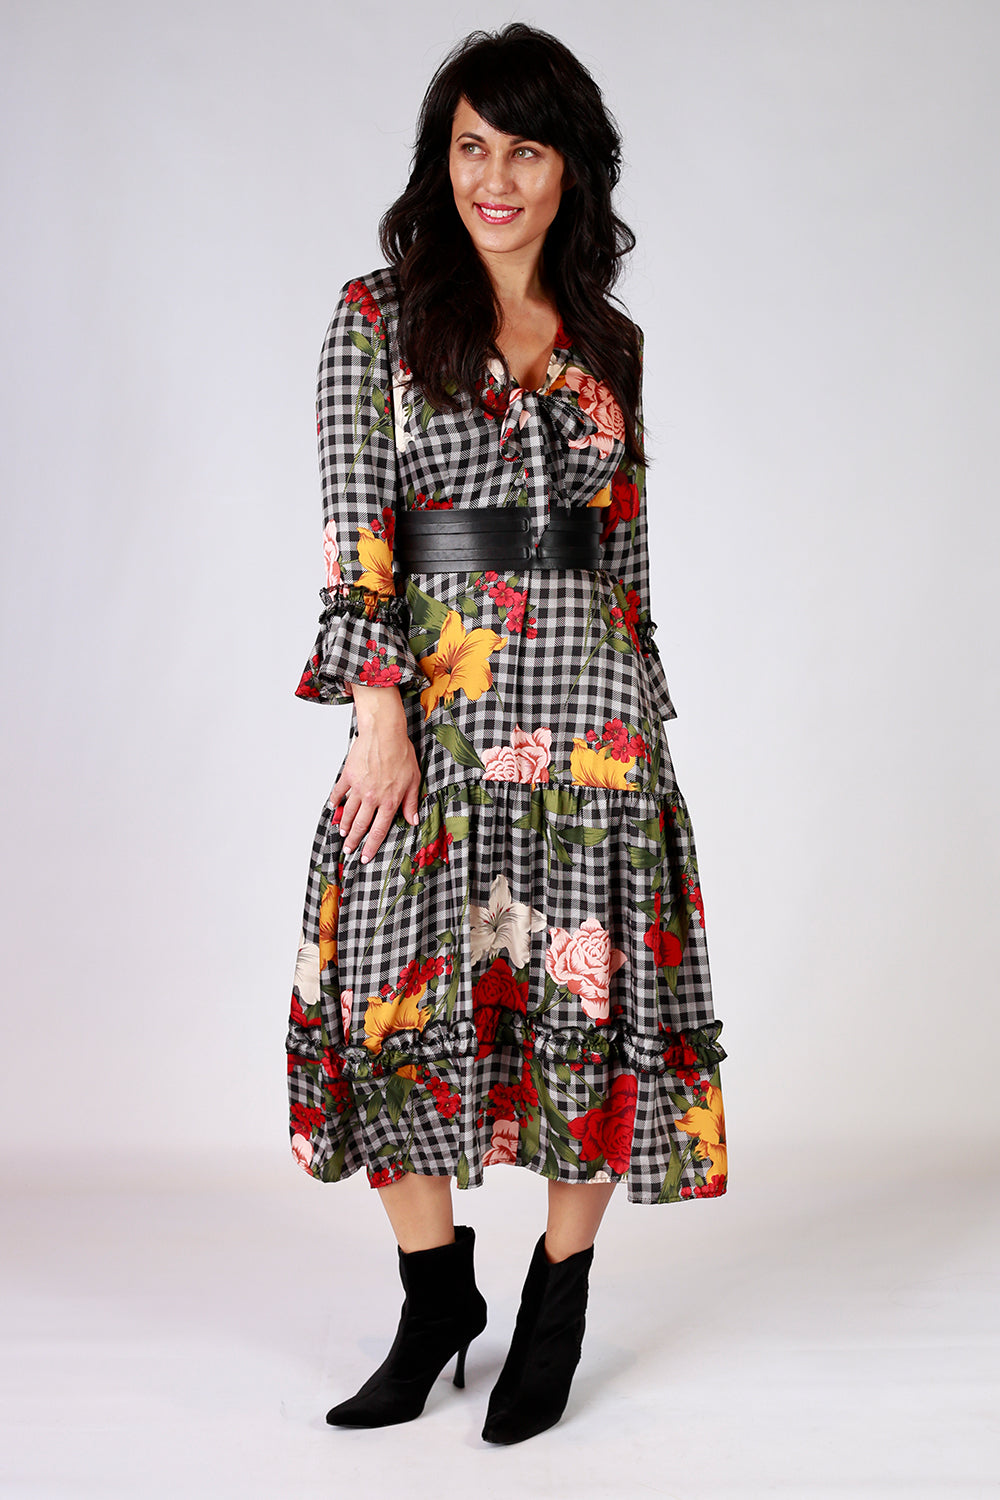 Maggie Magnolia Dress | Gypsy Fare AW20 | Annah Stretton | Gingham Dress | Annah Stretton Fashion | Designer Fashion | Floral Dress | Polka Dots | Designer Dress | Boho Dress | Annah Stretton NZ | Designer Fashion NZ